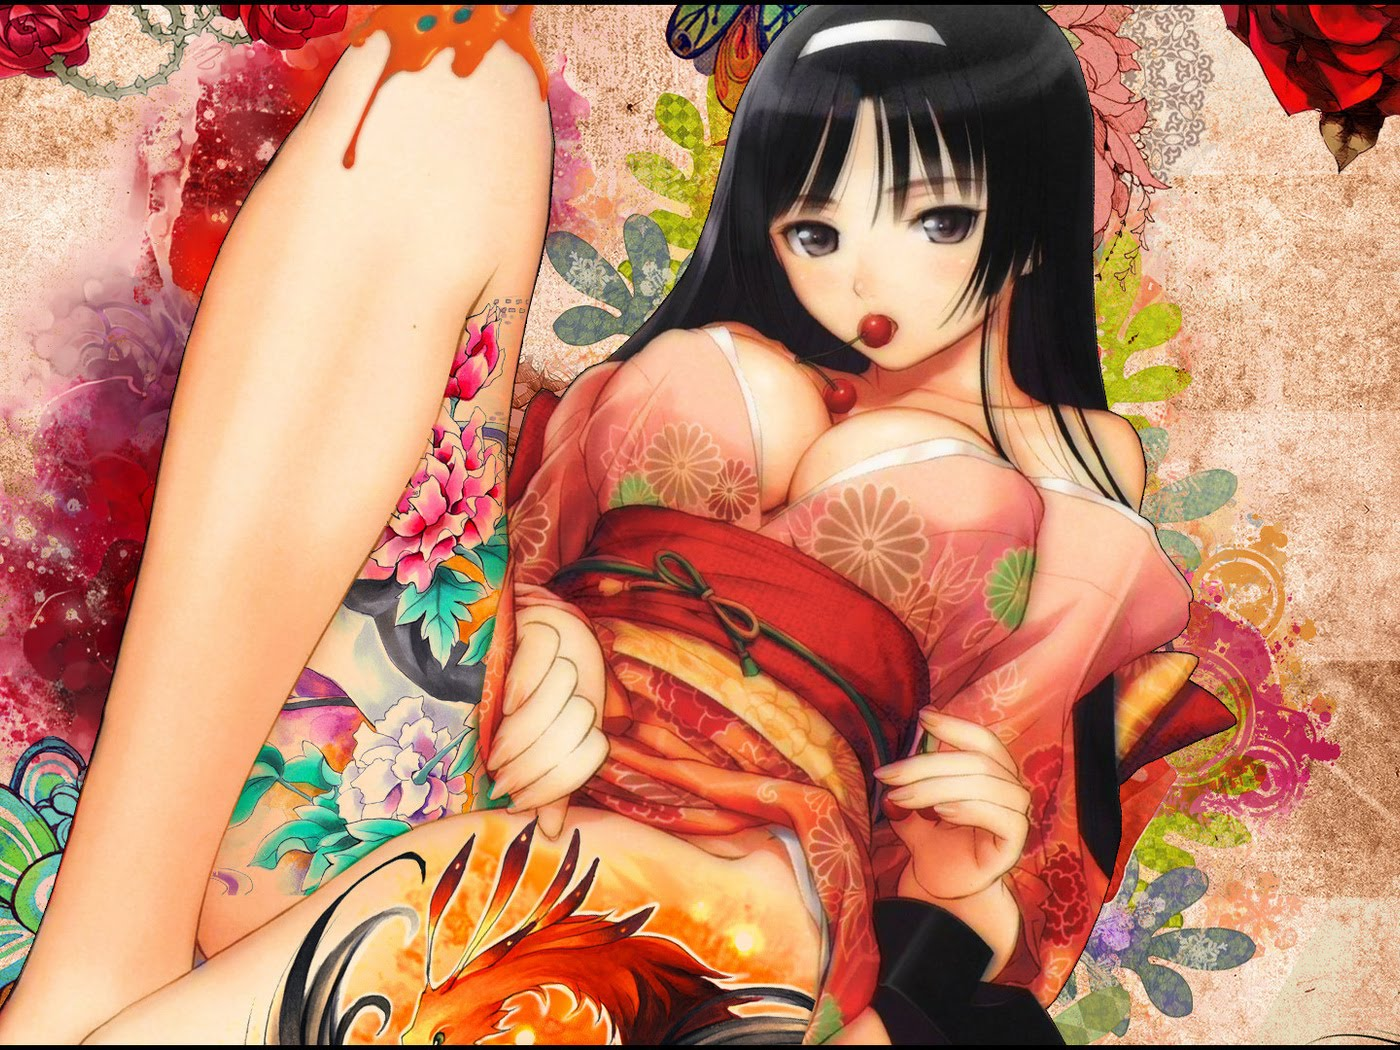 Erotic female anime boobs adult pic